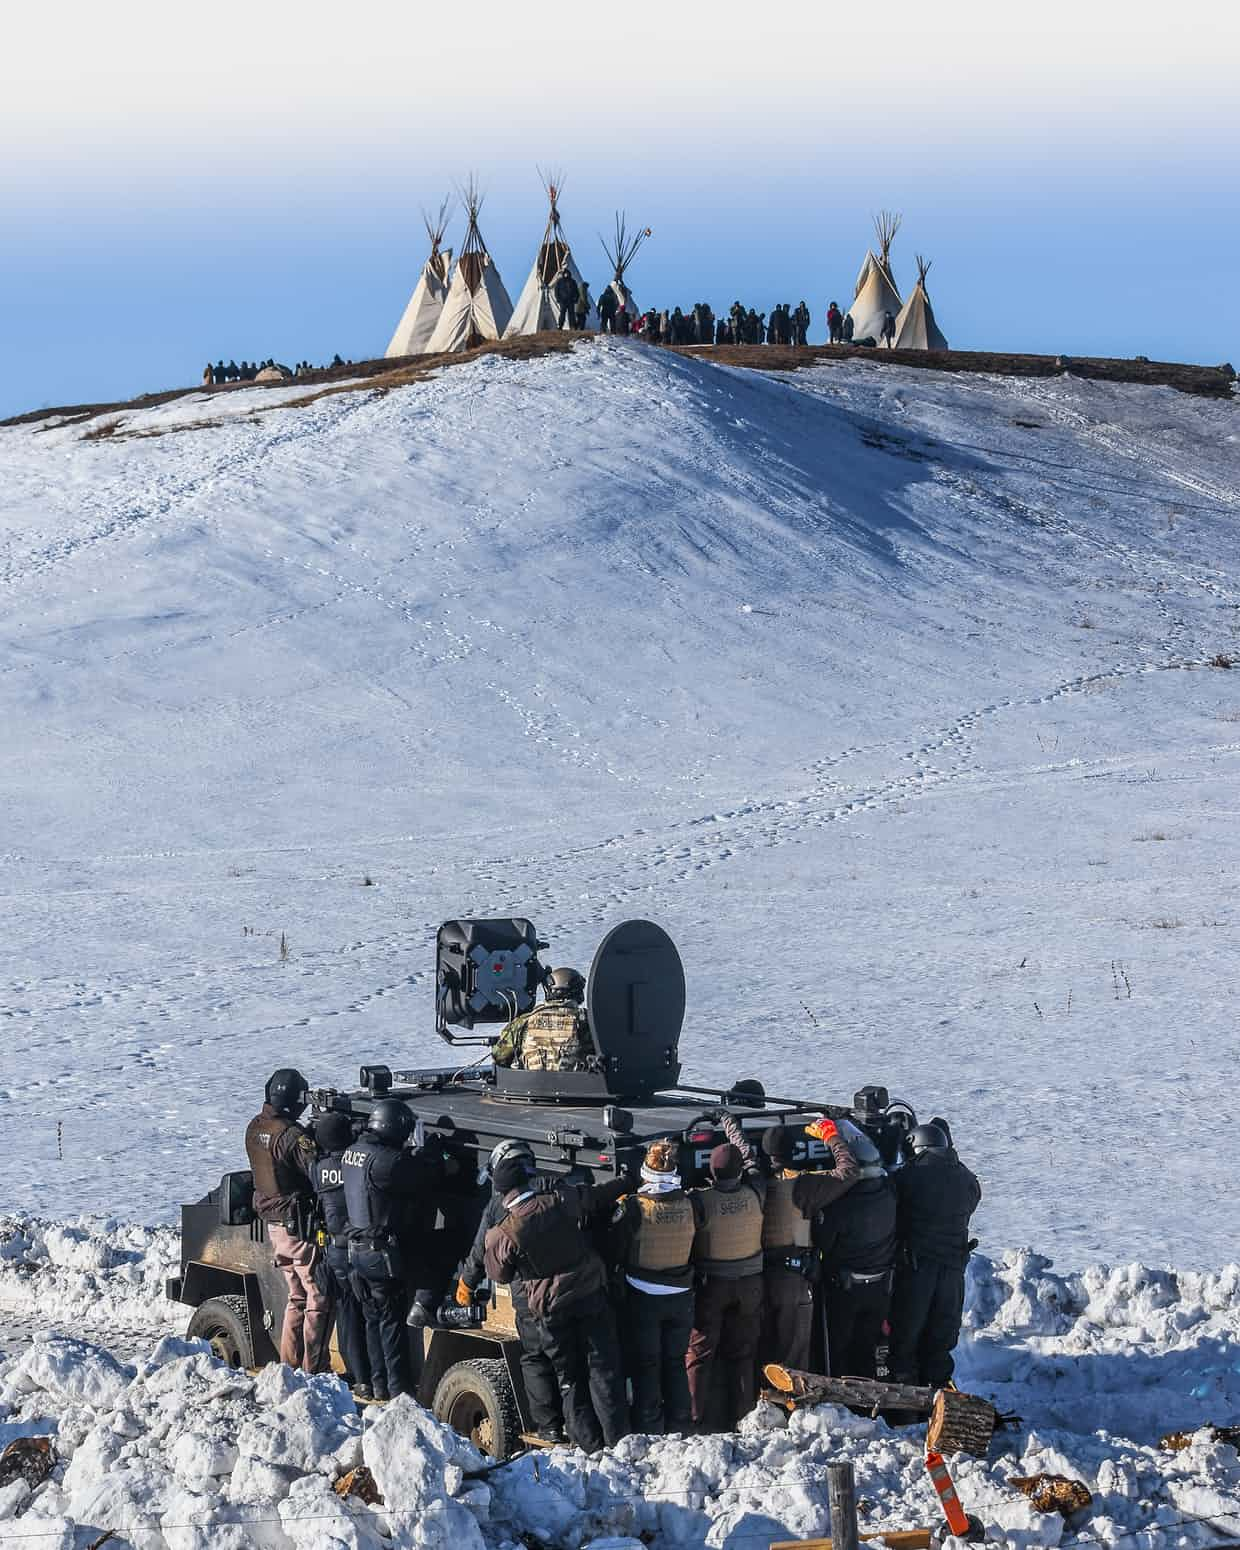 25 Of The Most Intriguing Pictures Of 2017 - Protesters face off with police in North Dakota